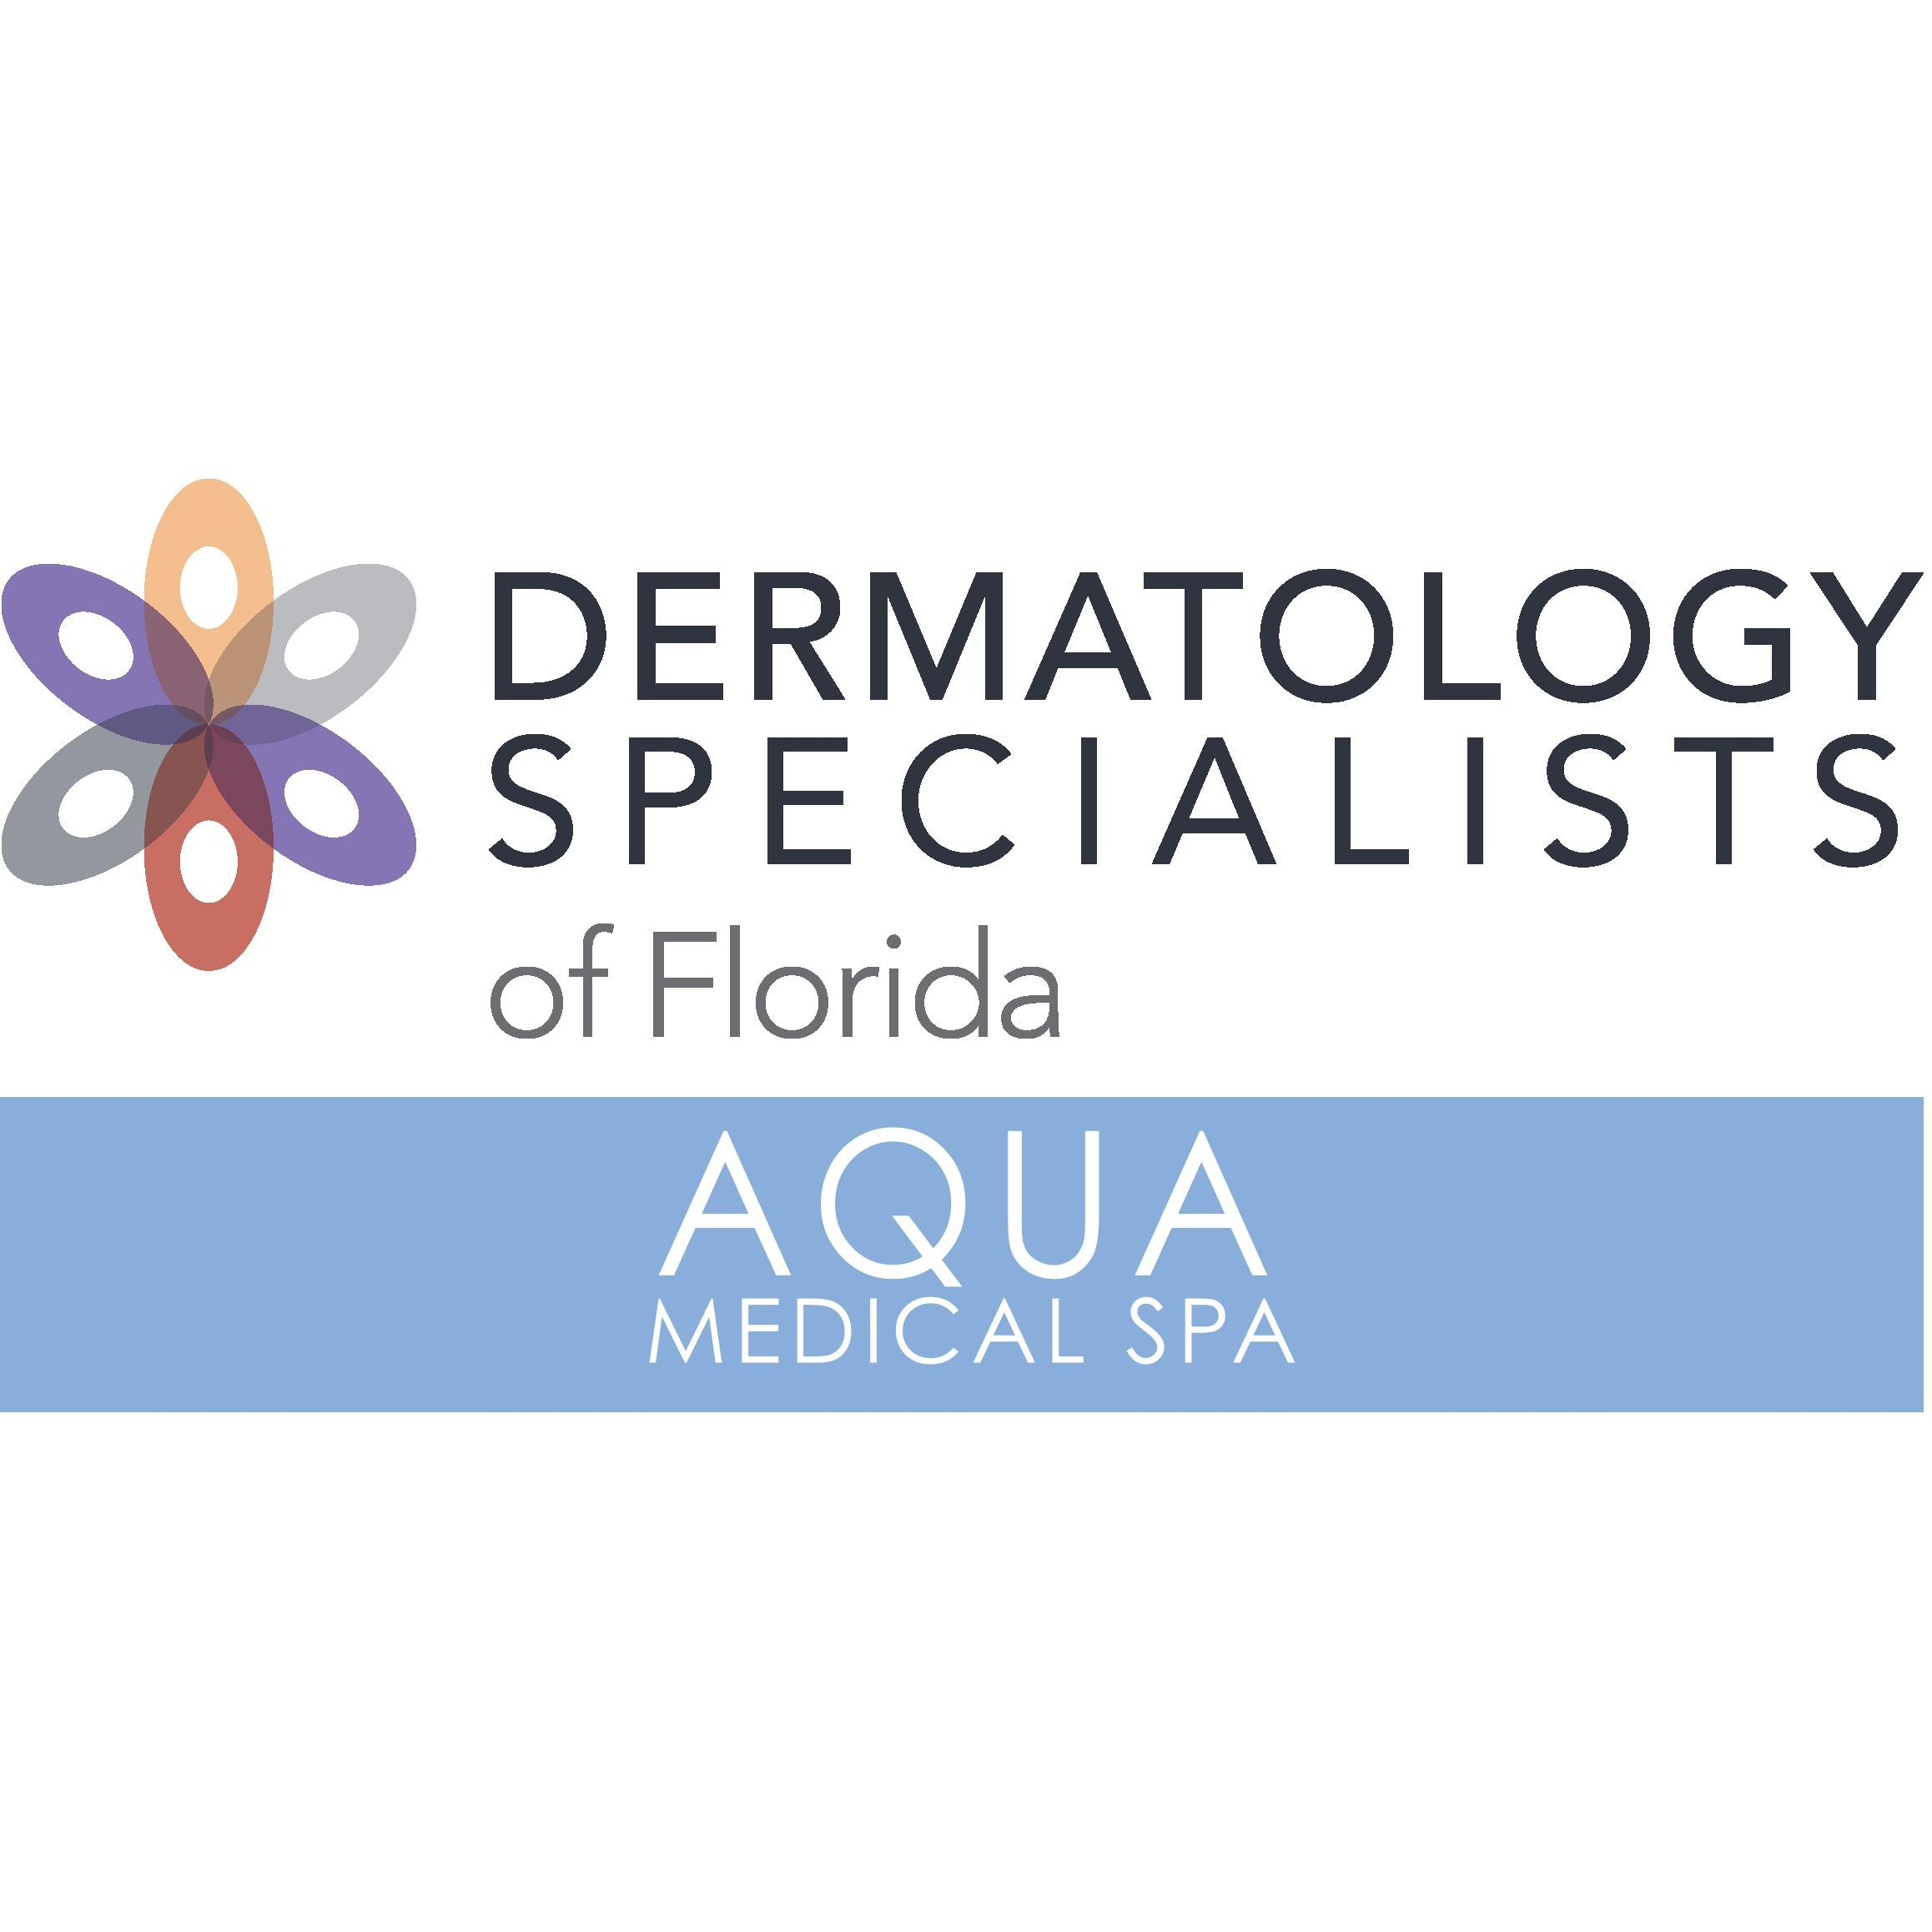 Dermatology Specialists of FL / Aqua Medical Spa image 6